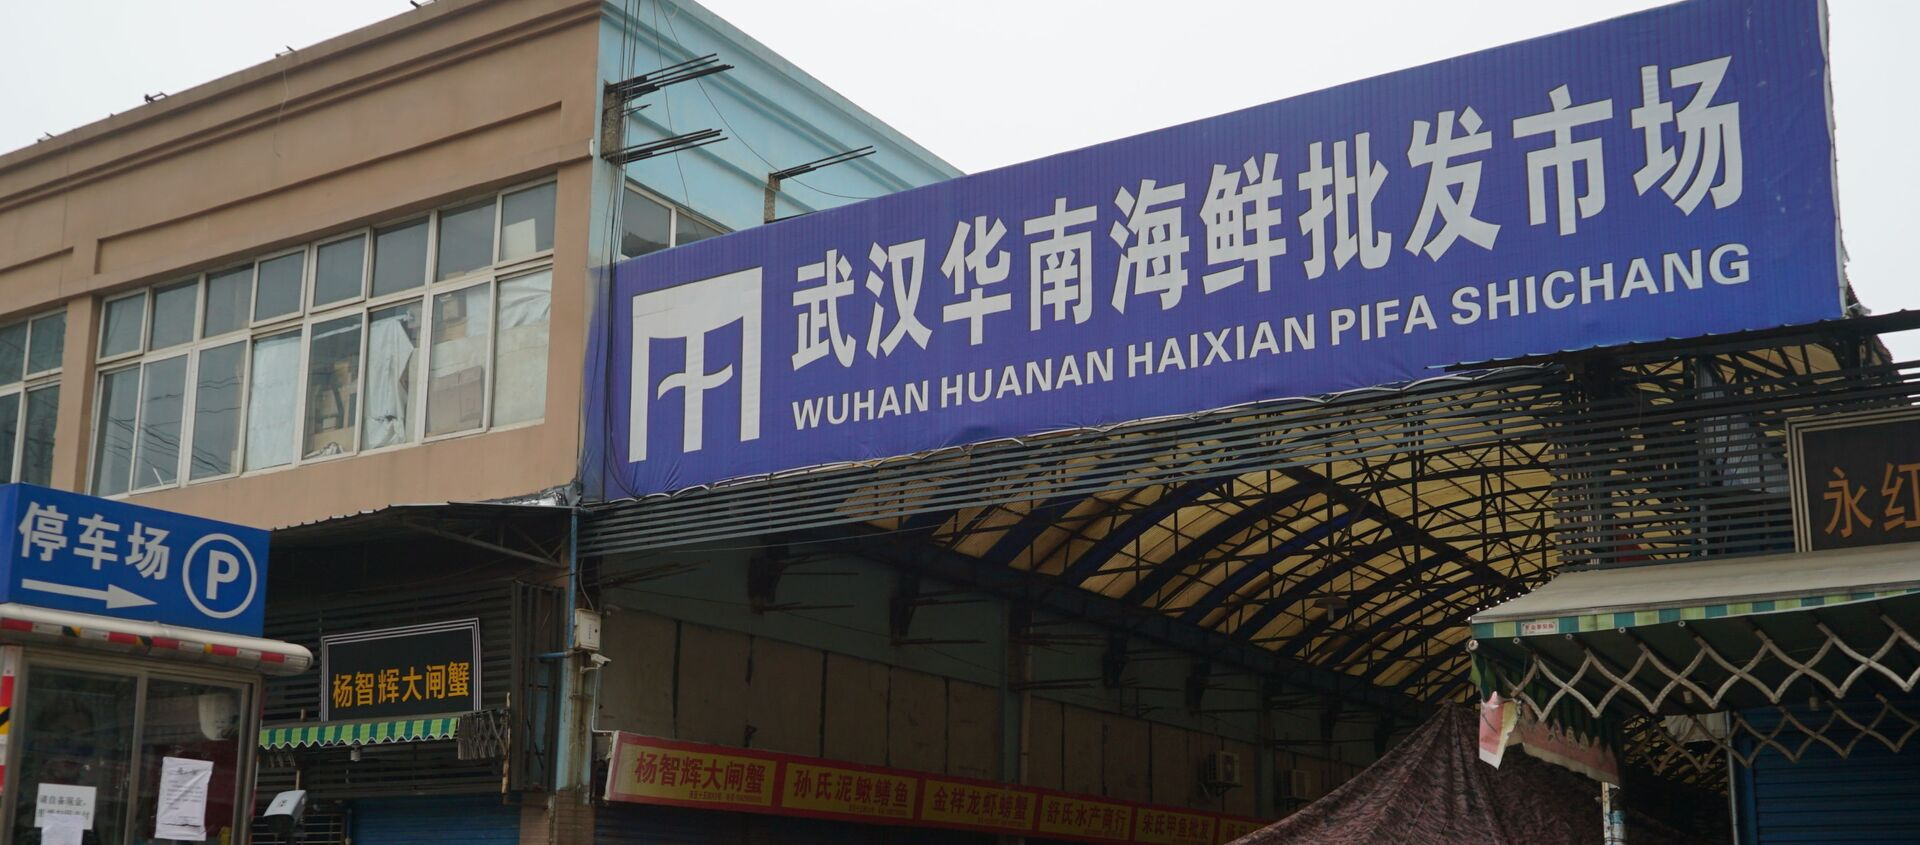 The Wuhan Huanan Wholesale Seafood Market, where a number of people related to the market fell ill with a virus, sits closed in Wuhan, China, Tuesday, Jan. 21, 2020. - Sputnik International, 1920, 28.05.2021